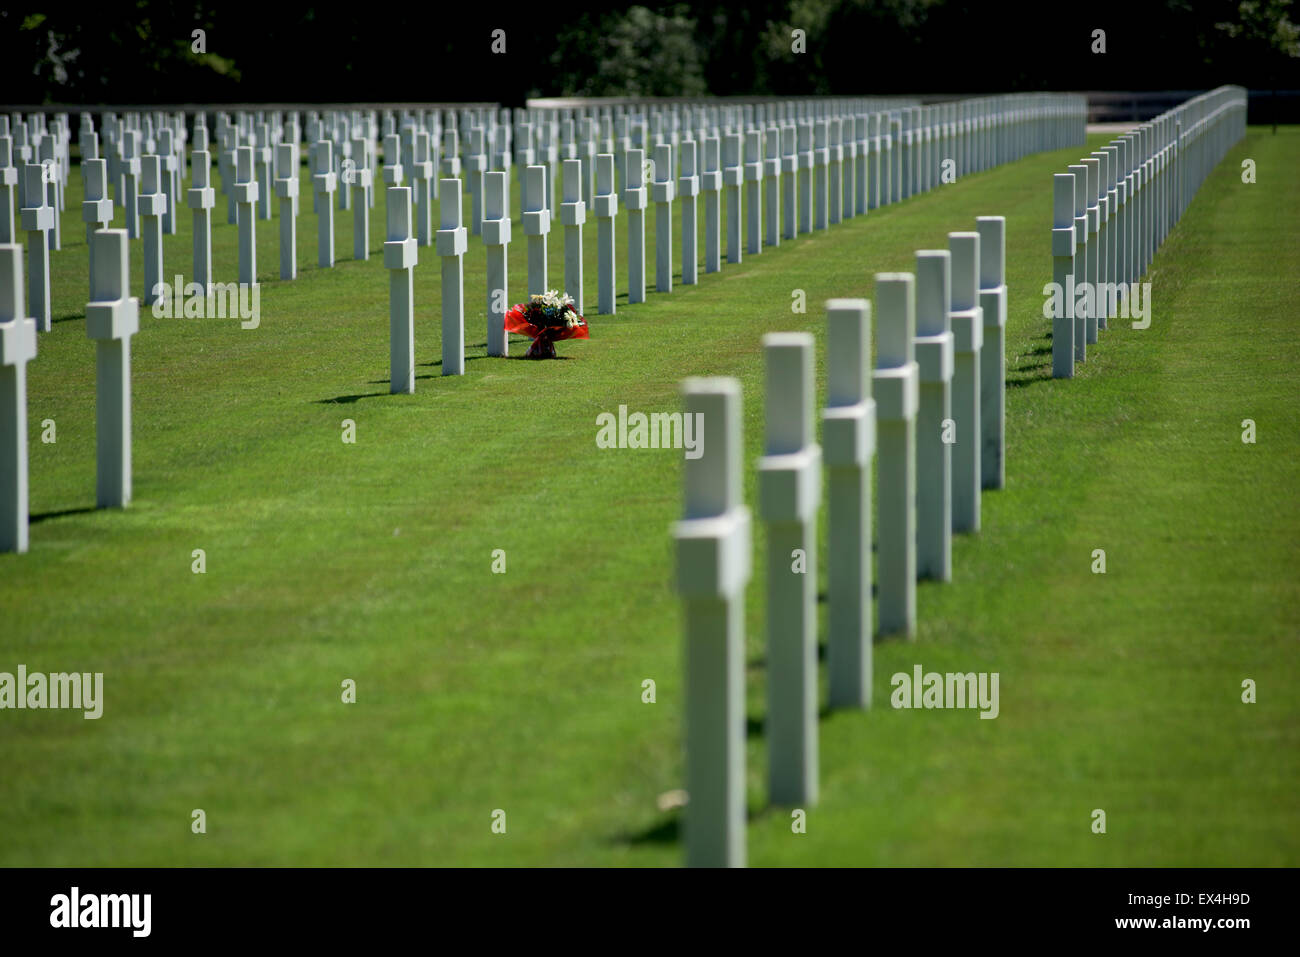 Epinal American Cemetery and Memorial, Dinoze, Vosges, France. June 2015 - Stock Image